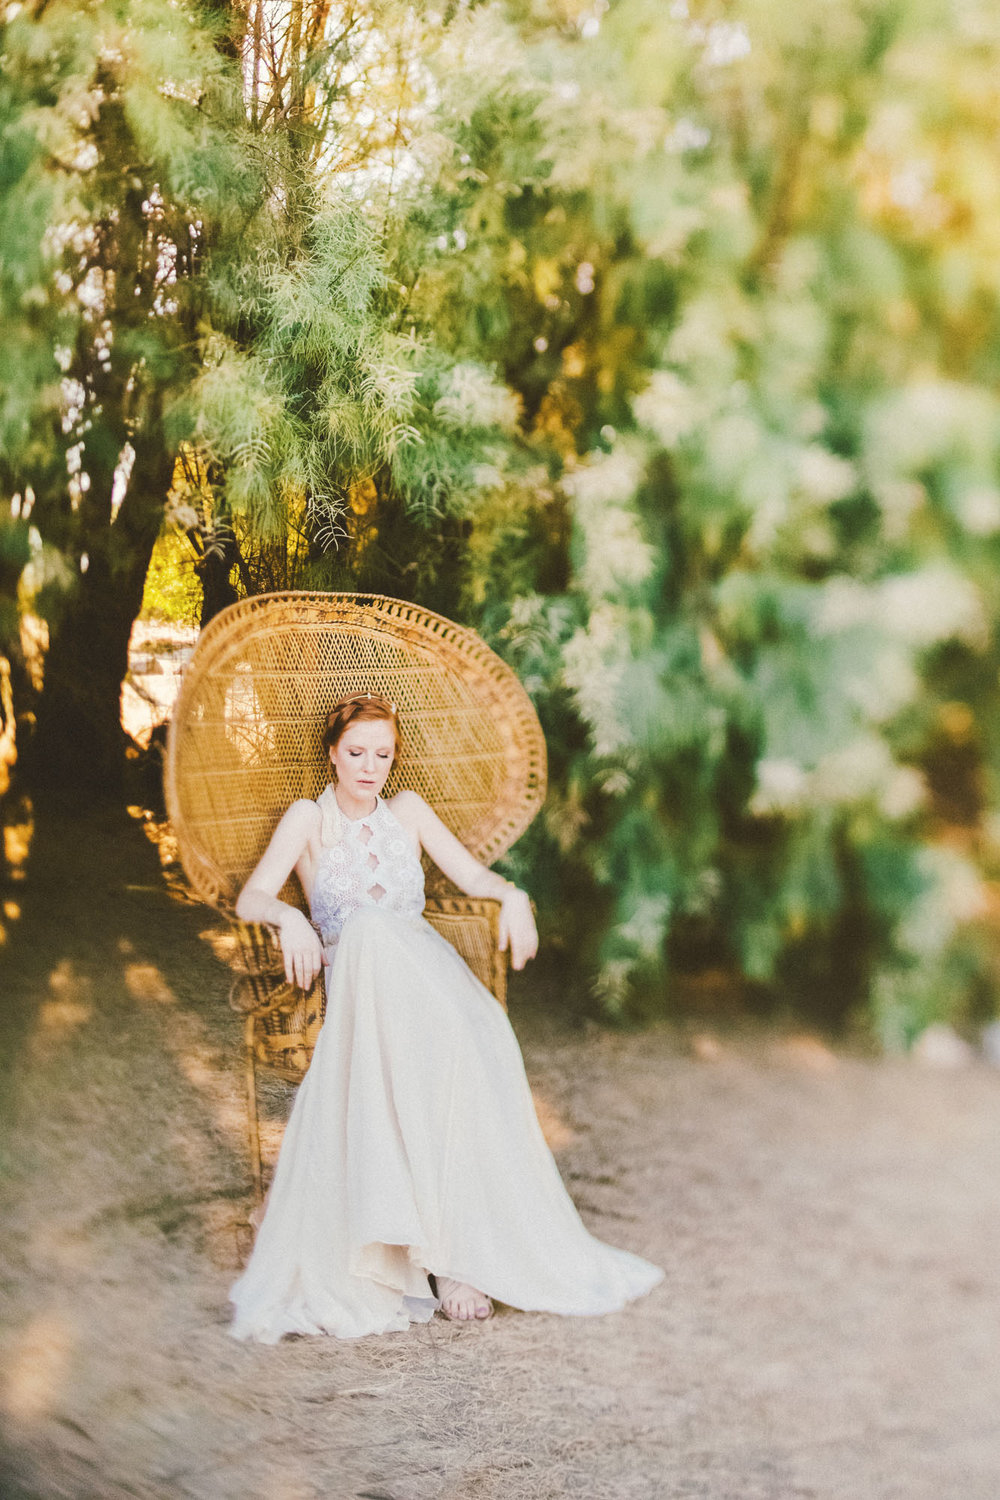 Boho chis Bridal inspiration Joshua tree california wedding photographer